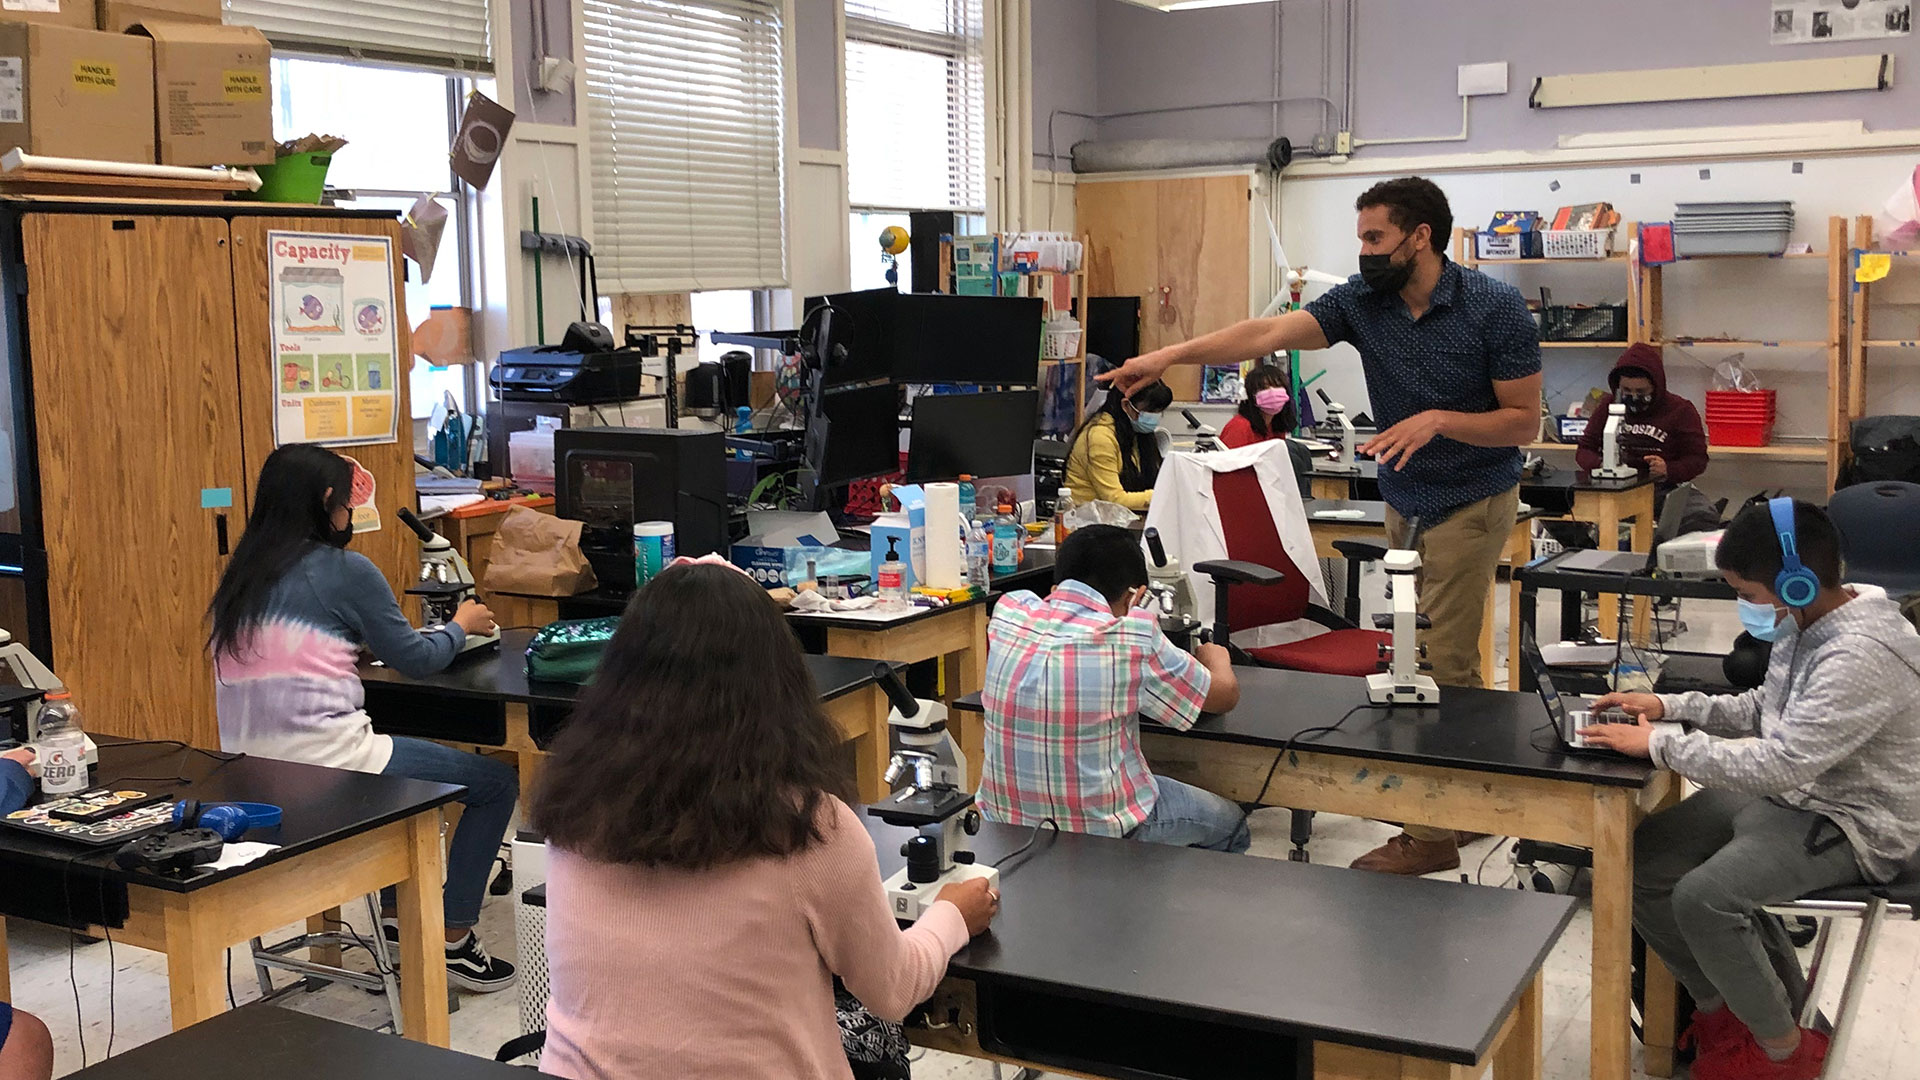 Sixth grade teacher Patrick Messac teaches a science class at Life Academy of Health and Bioscience in East Oakland. Students are studying the health impacts of air pollution and asking questions about their own exposure.